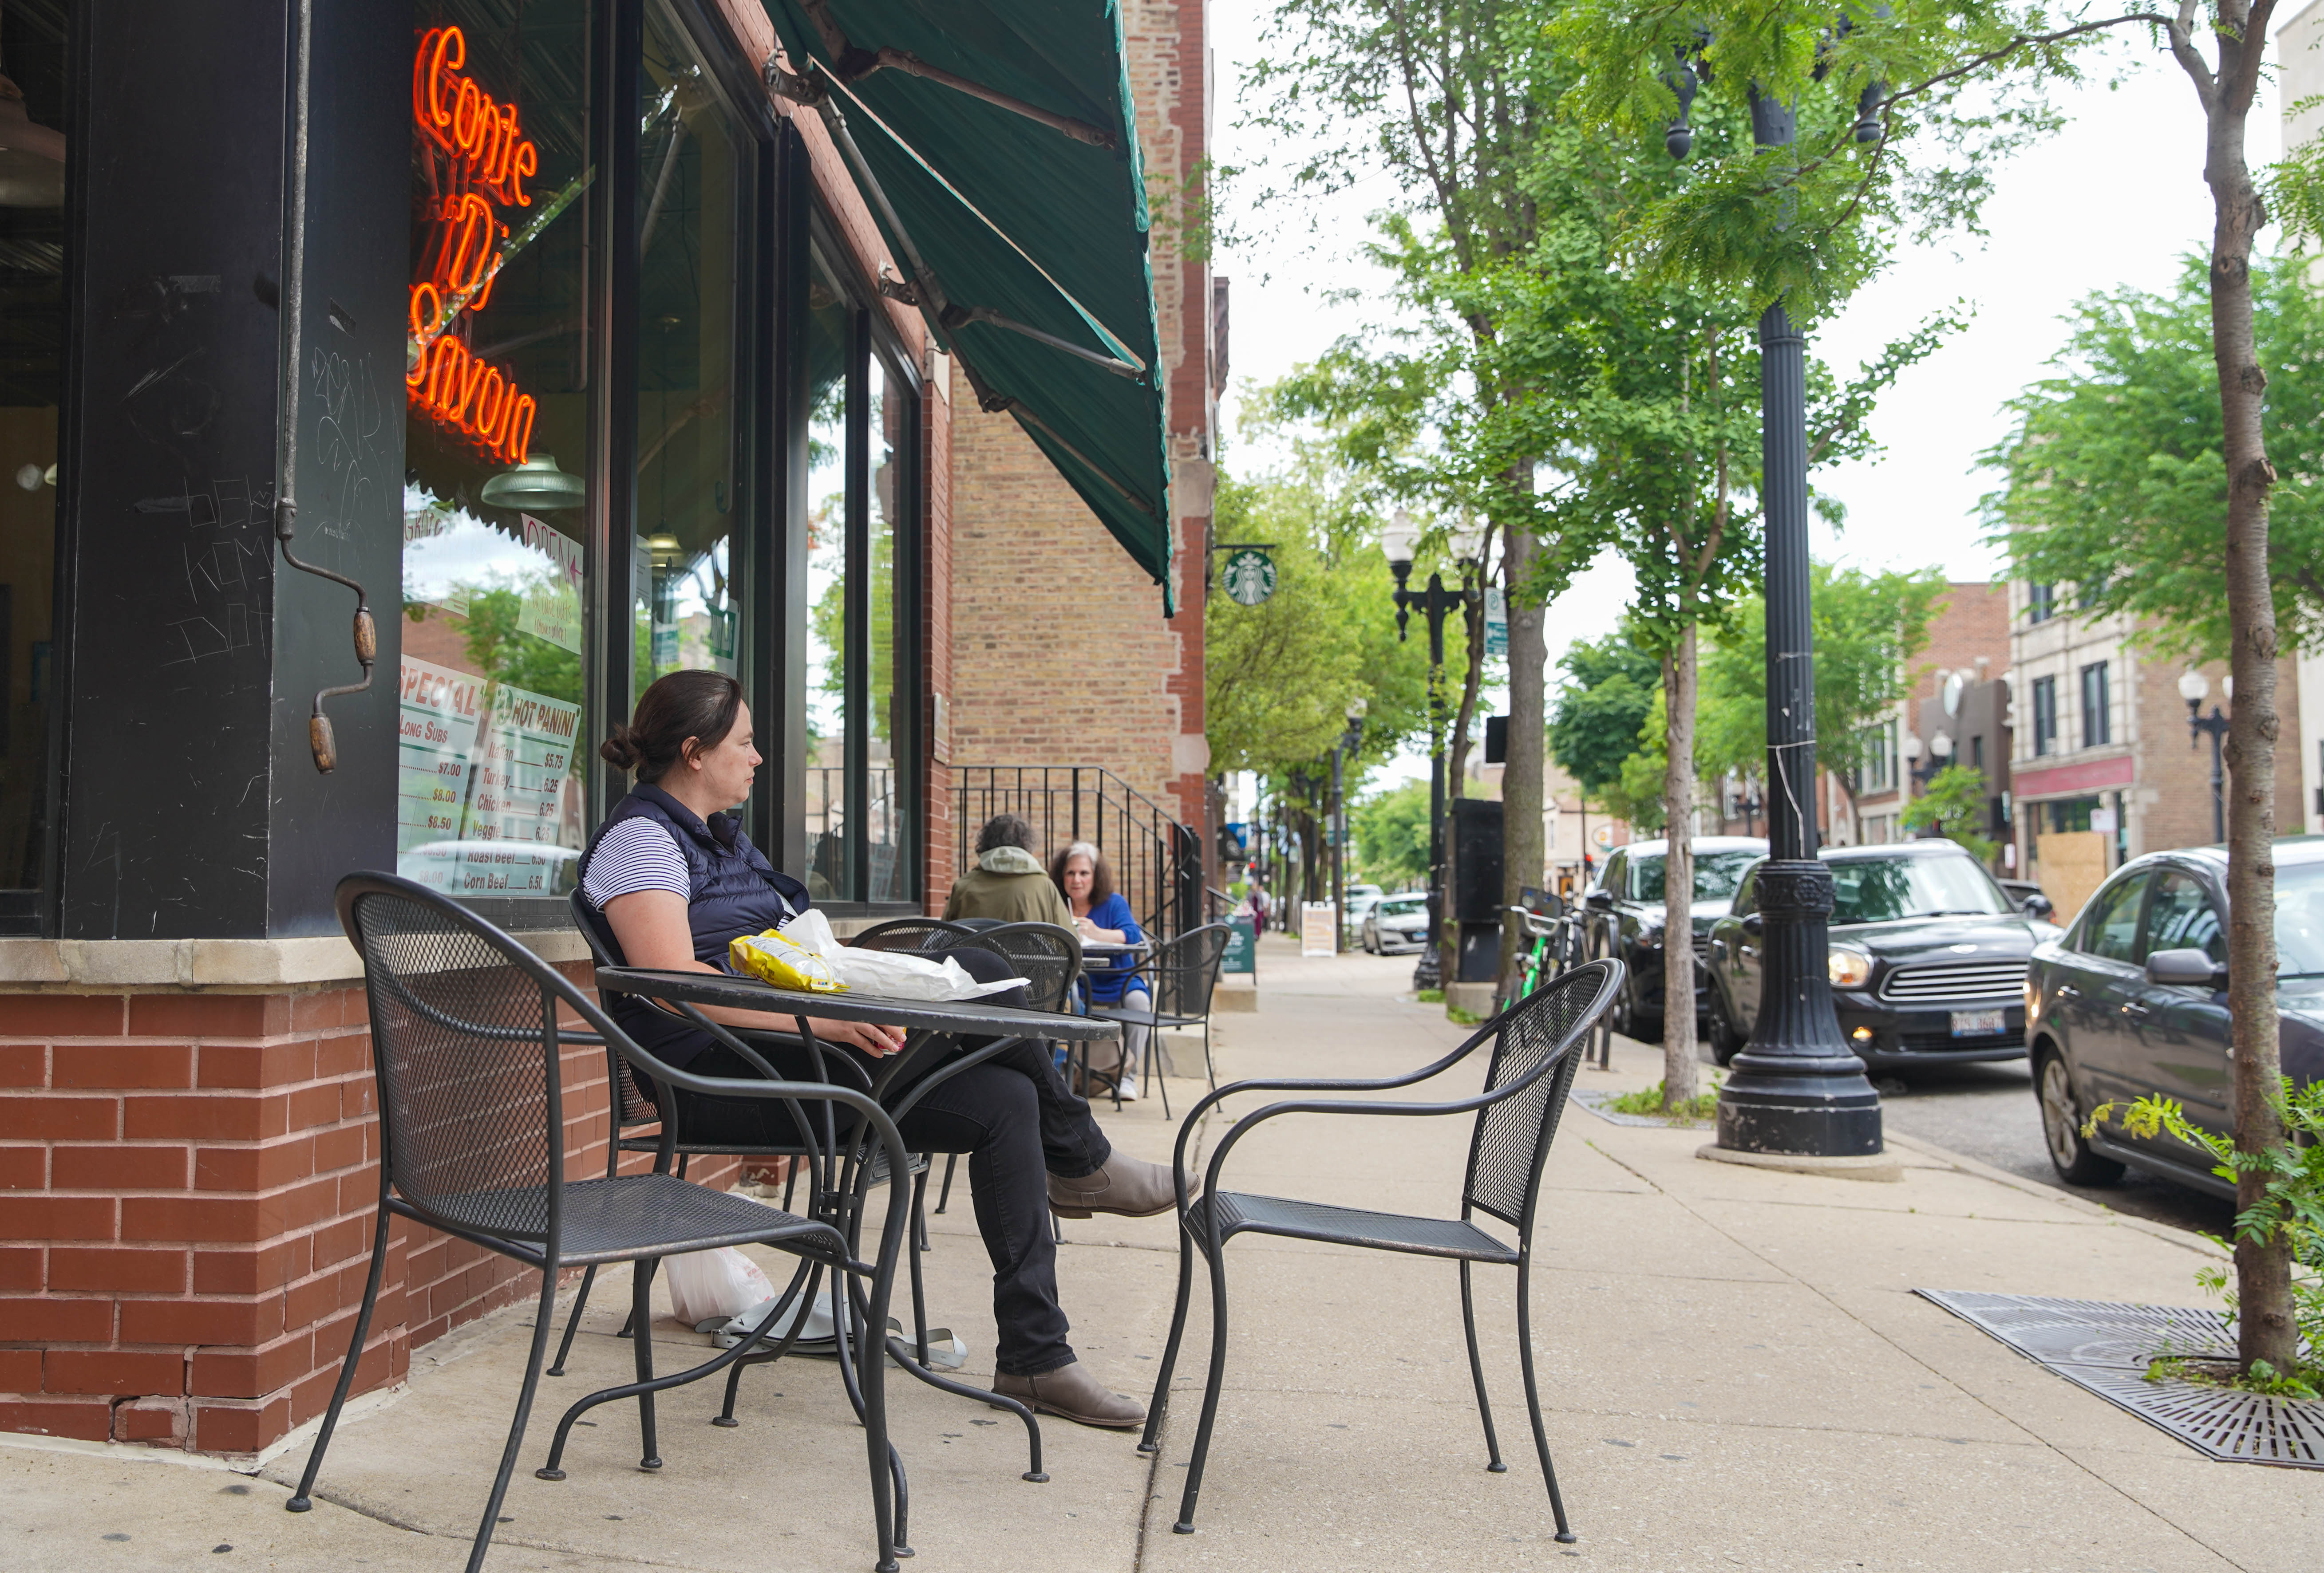 Conte Di Savoia, 1438 W. Taylor St.had its patio open for guests to enjoy their lunch at on Wednesday, June 3.